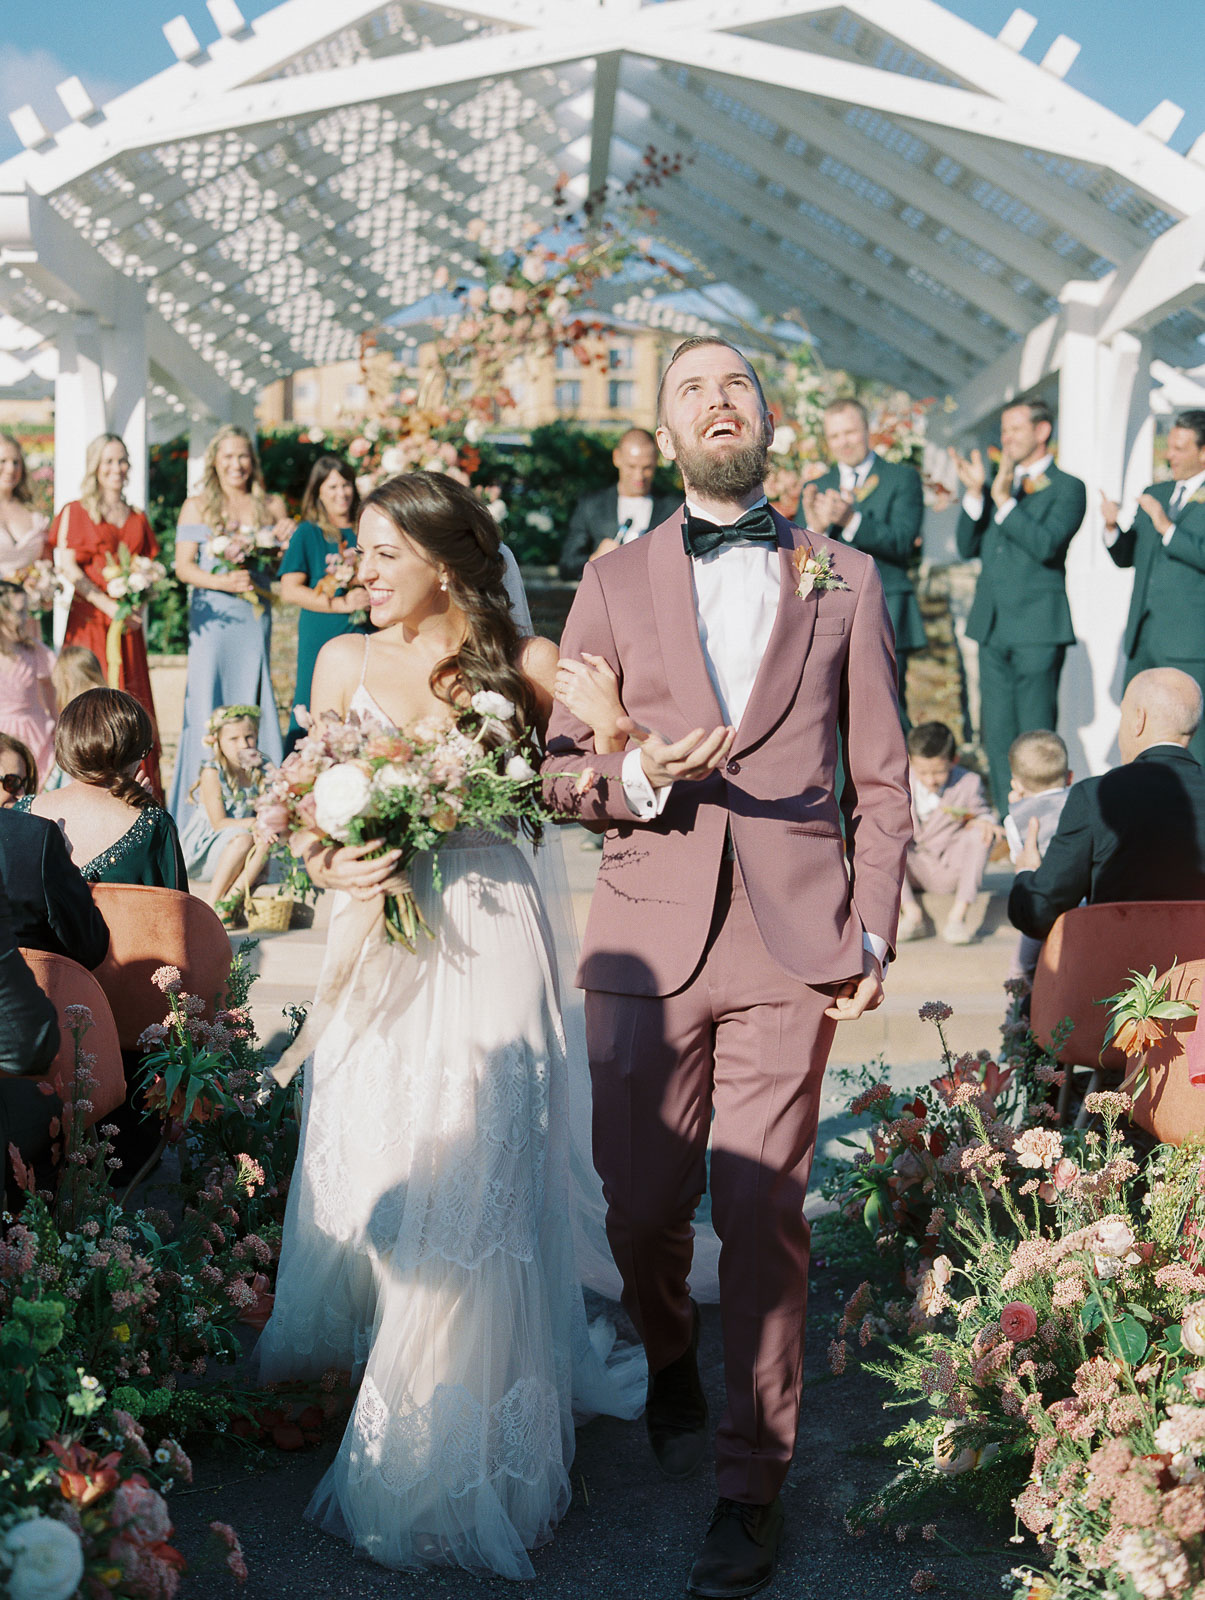 bride and groom recessional aisle smiling guests clapping